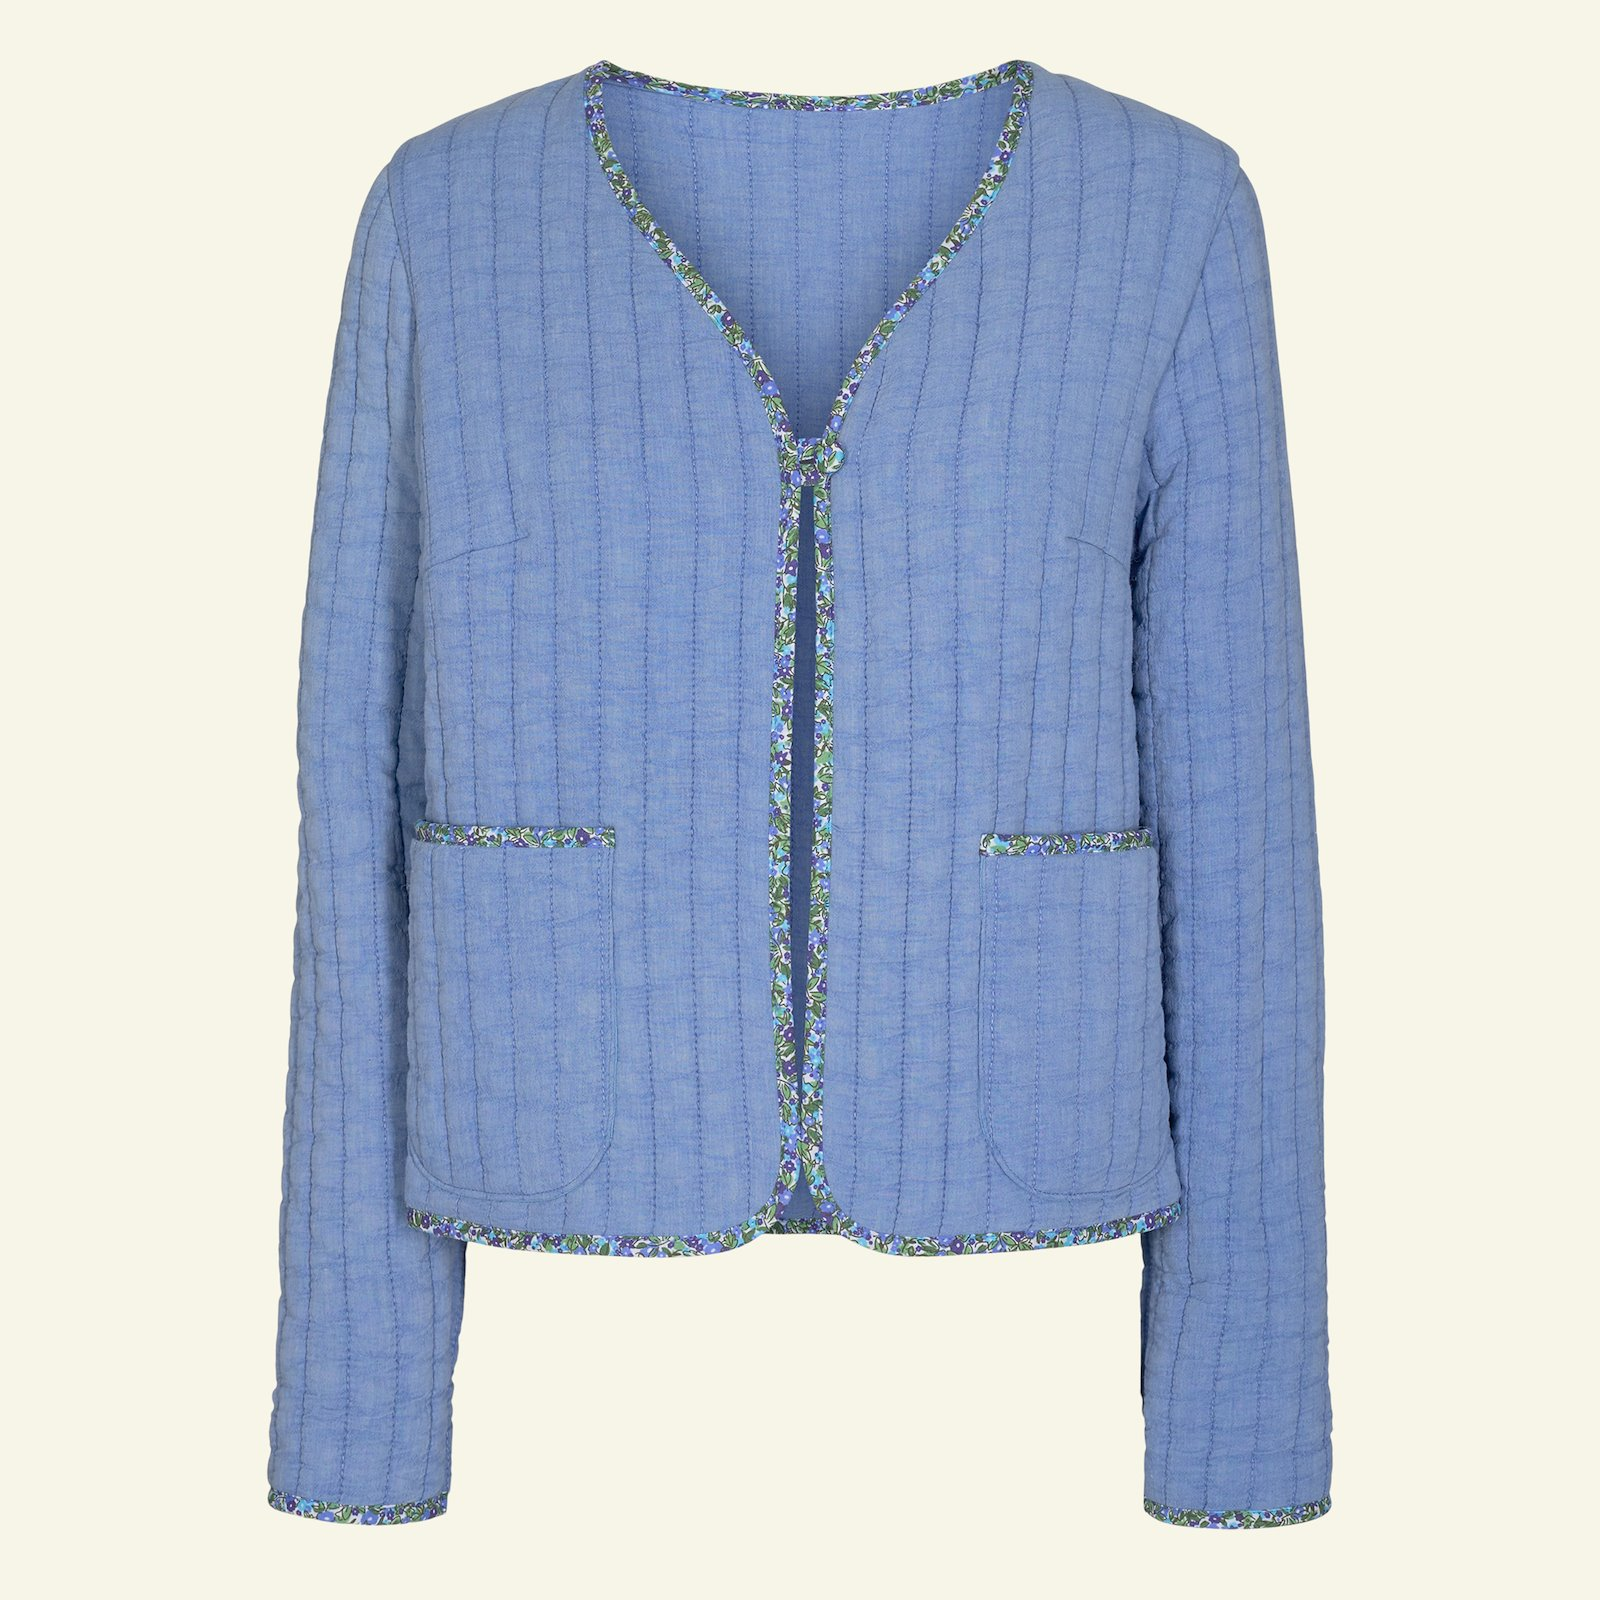 Quilted jacket and waistcoat, 34/6 p24047_920229_64110_43507_sskit